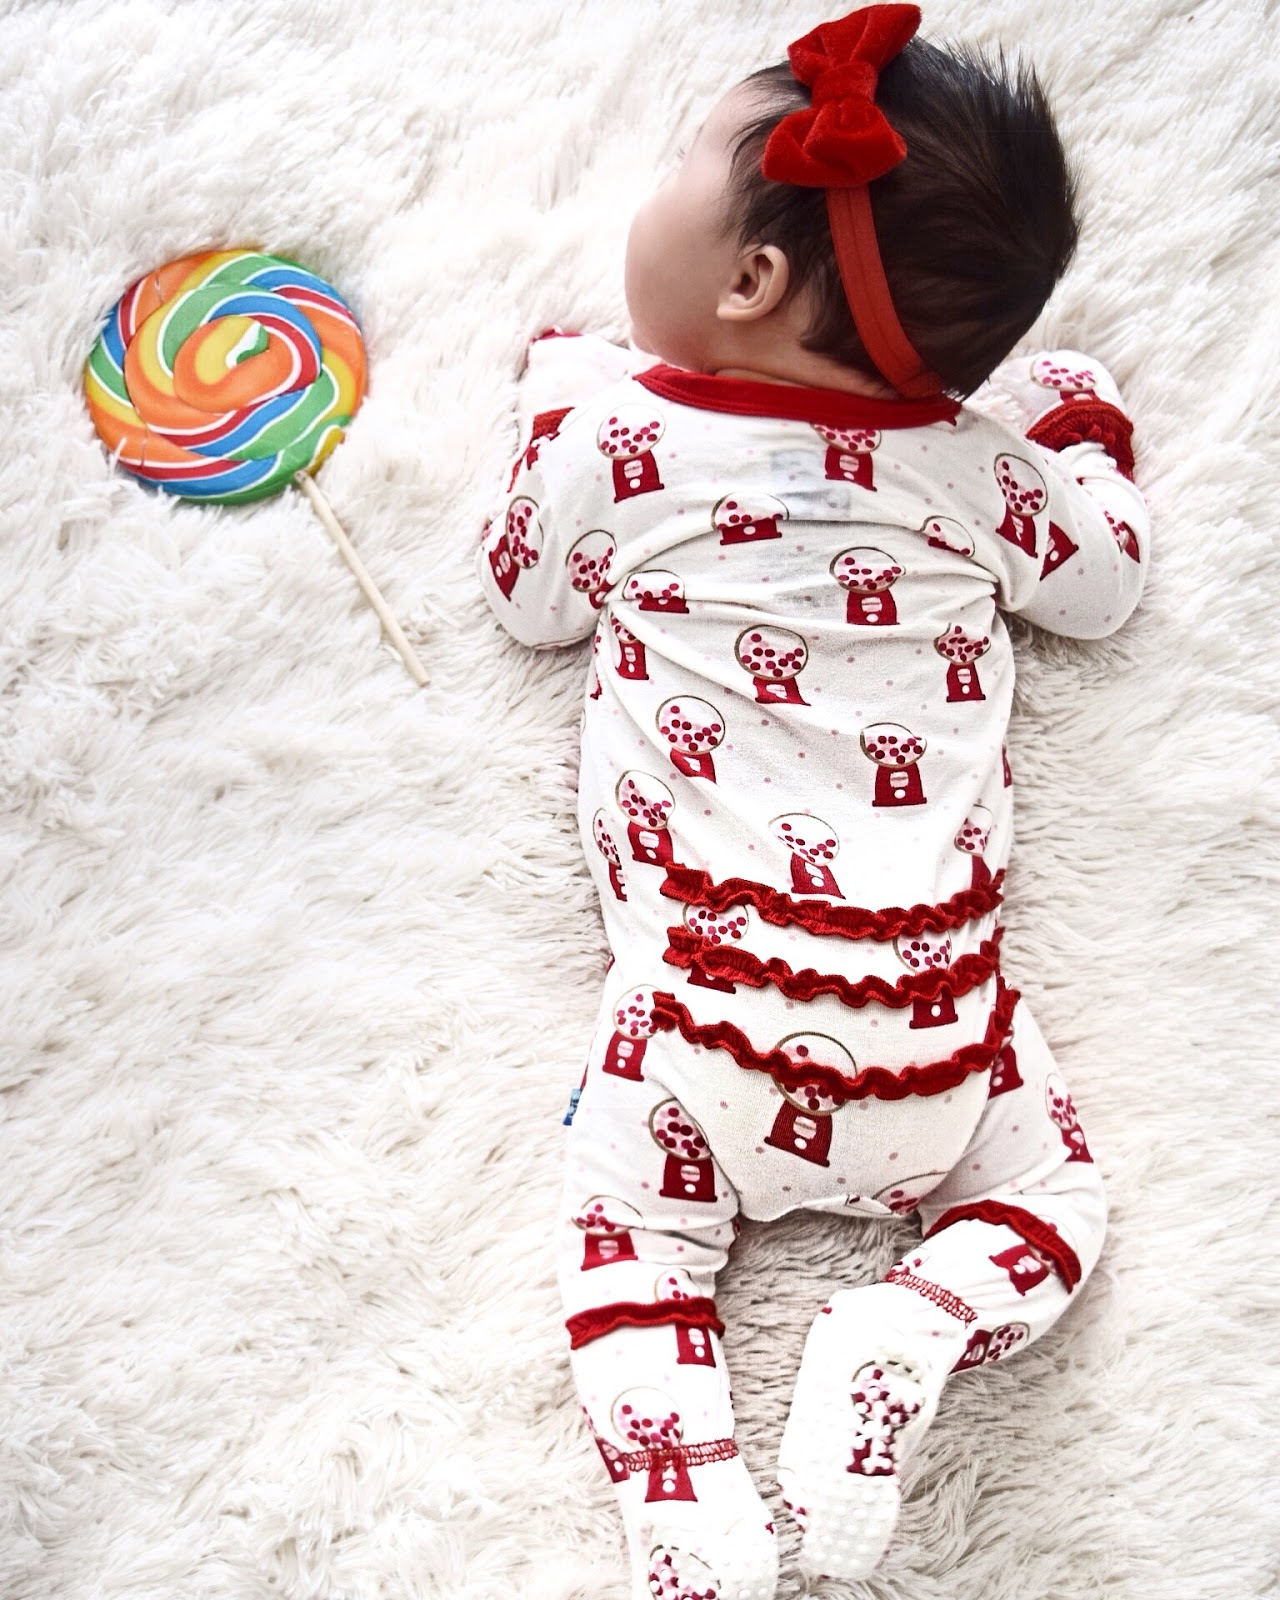 Baby, Kickee Pants, Picket Fence, Baby Clothes, Kickee Pants Print Muffin Ruffle Footie in Gumball Machine, women and children's boutique, designer children's clothes